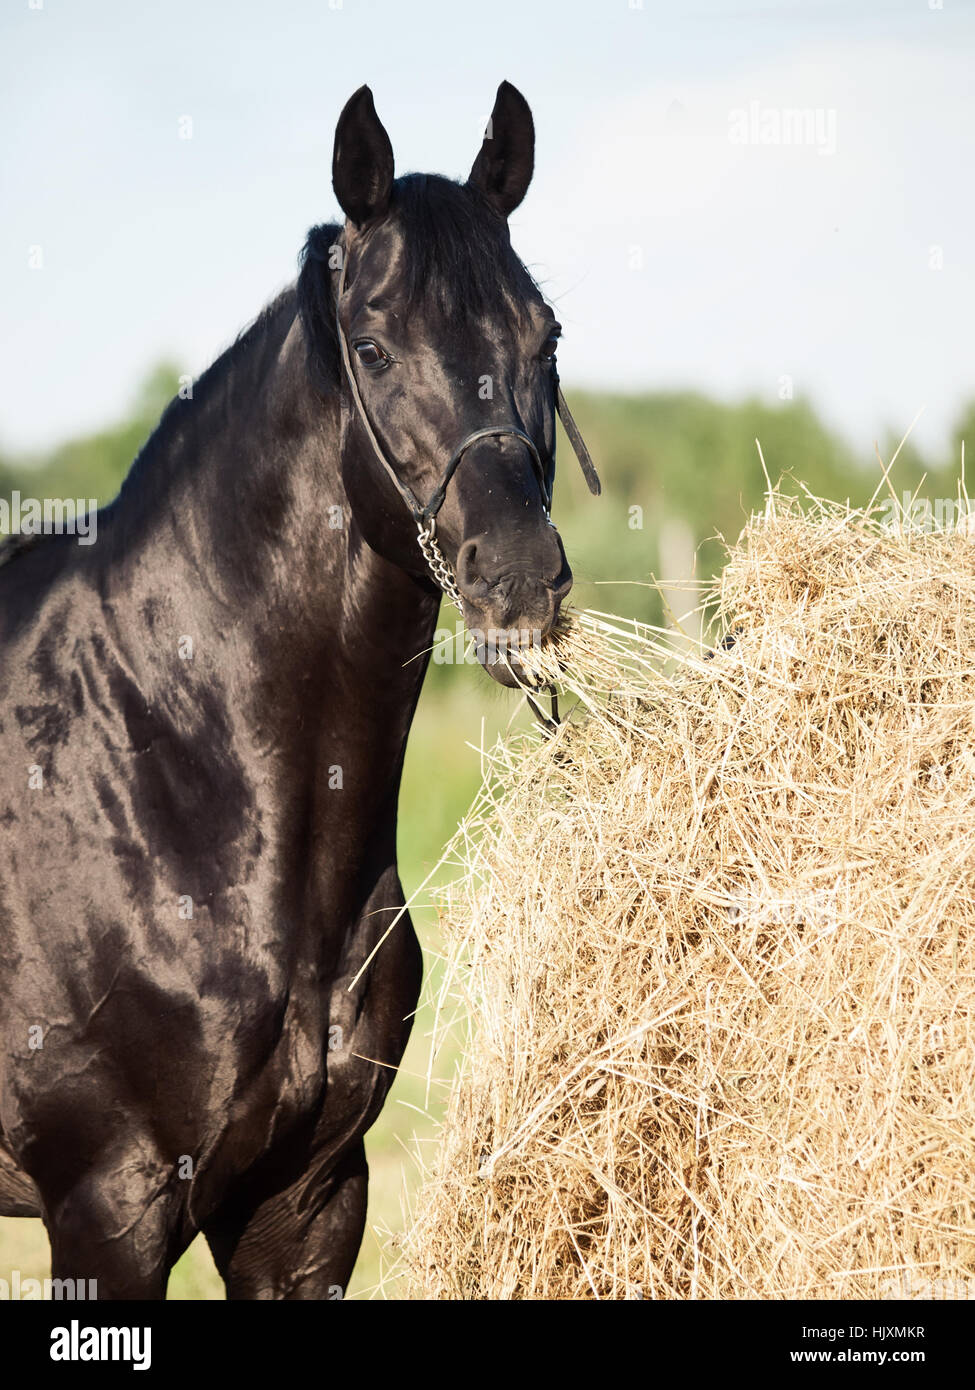 eating hay black horse from haystack in field - Stock Image